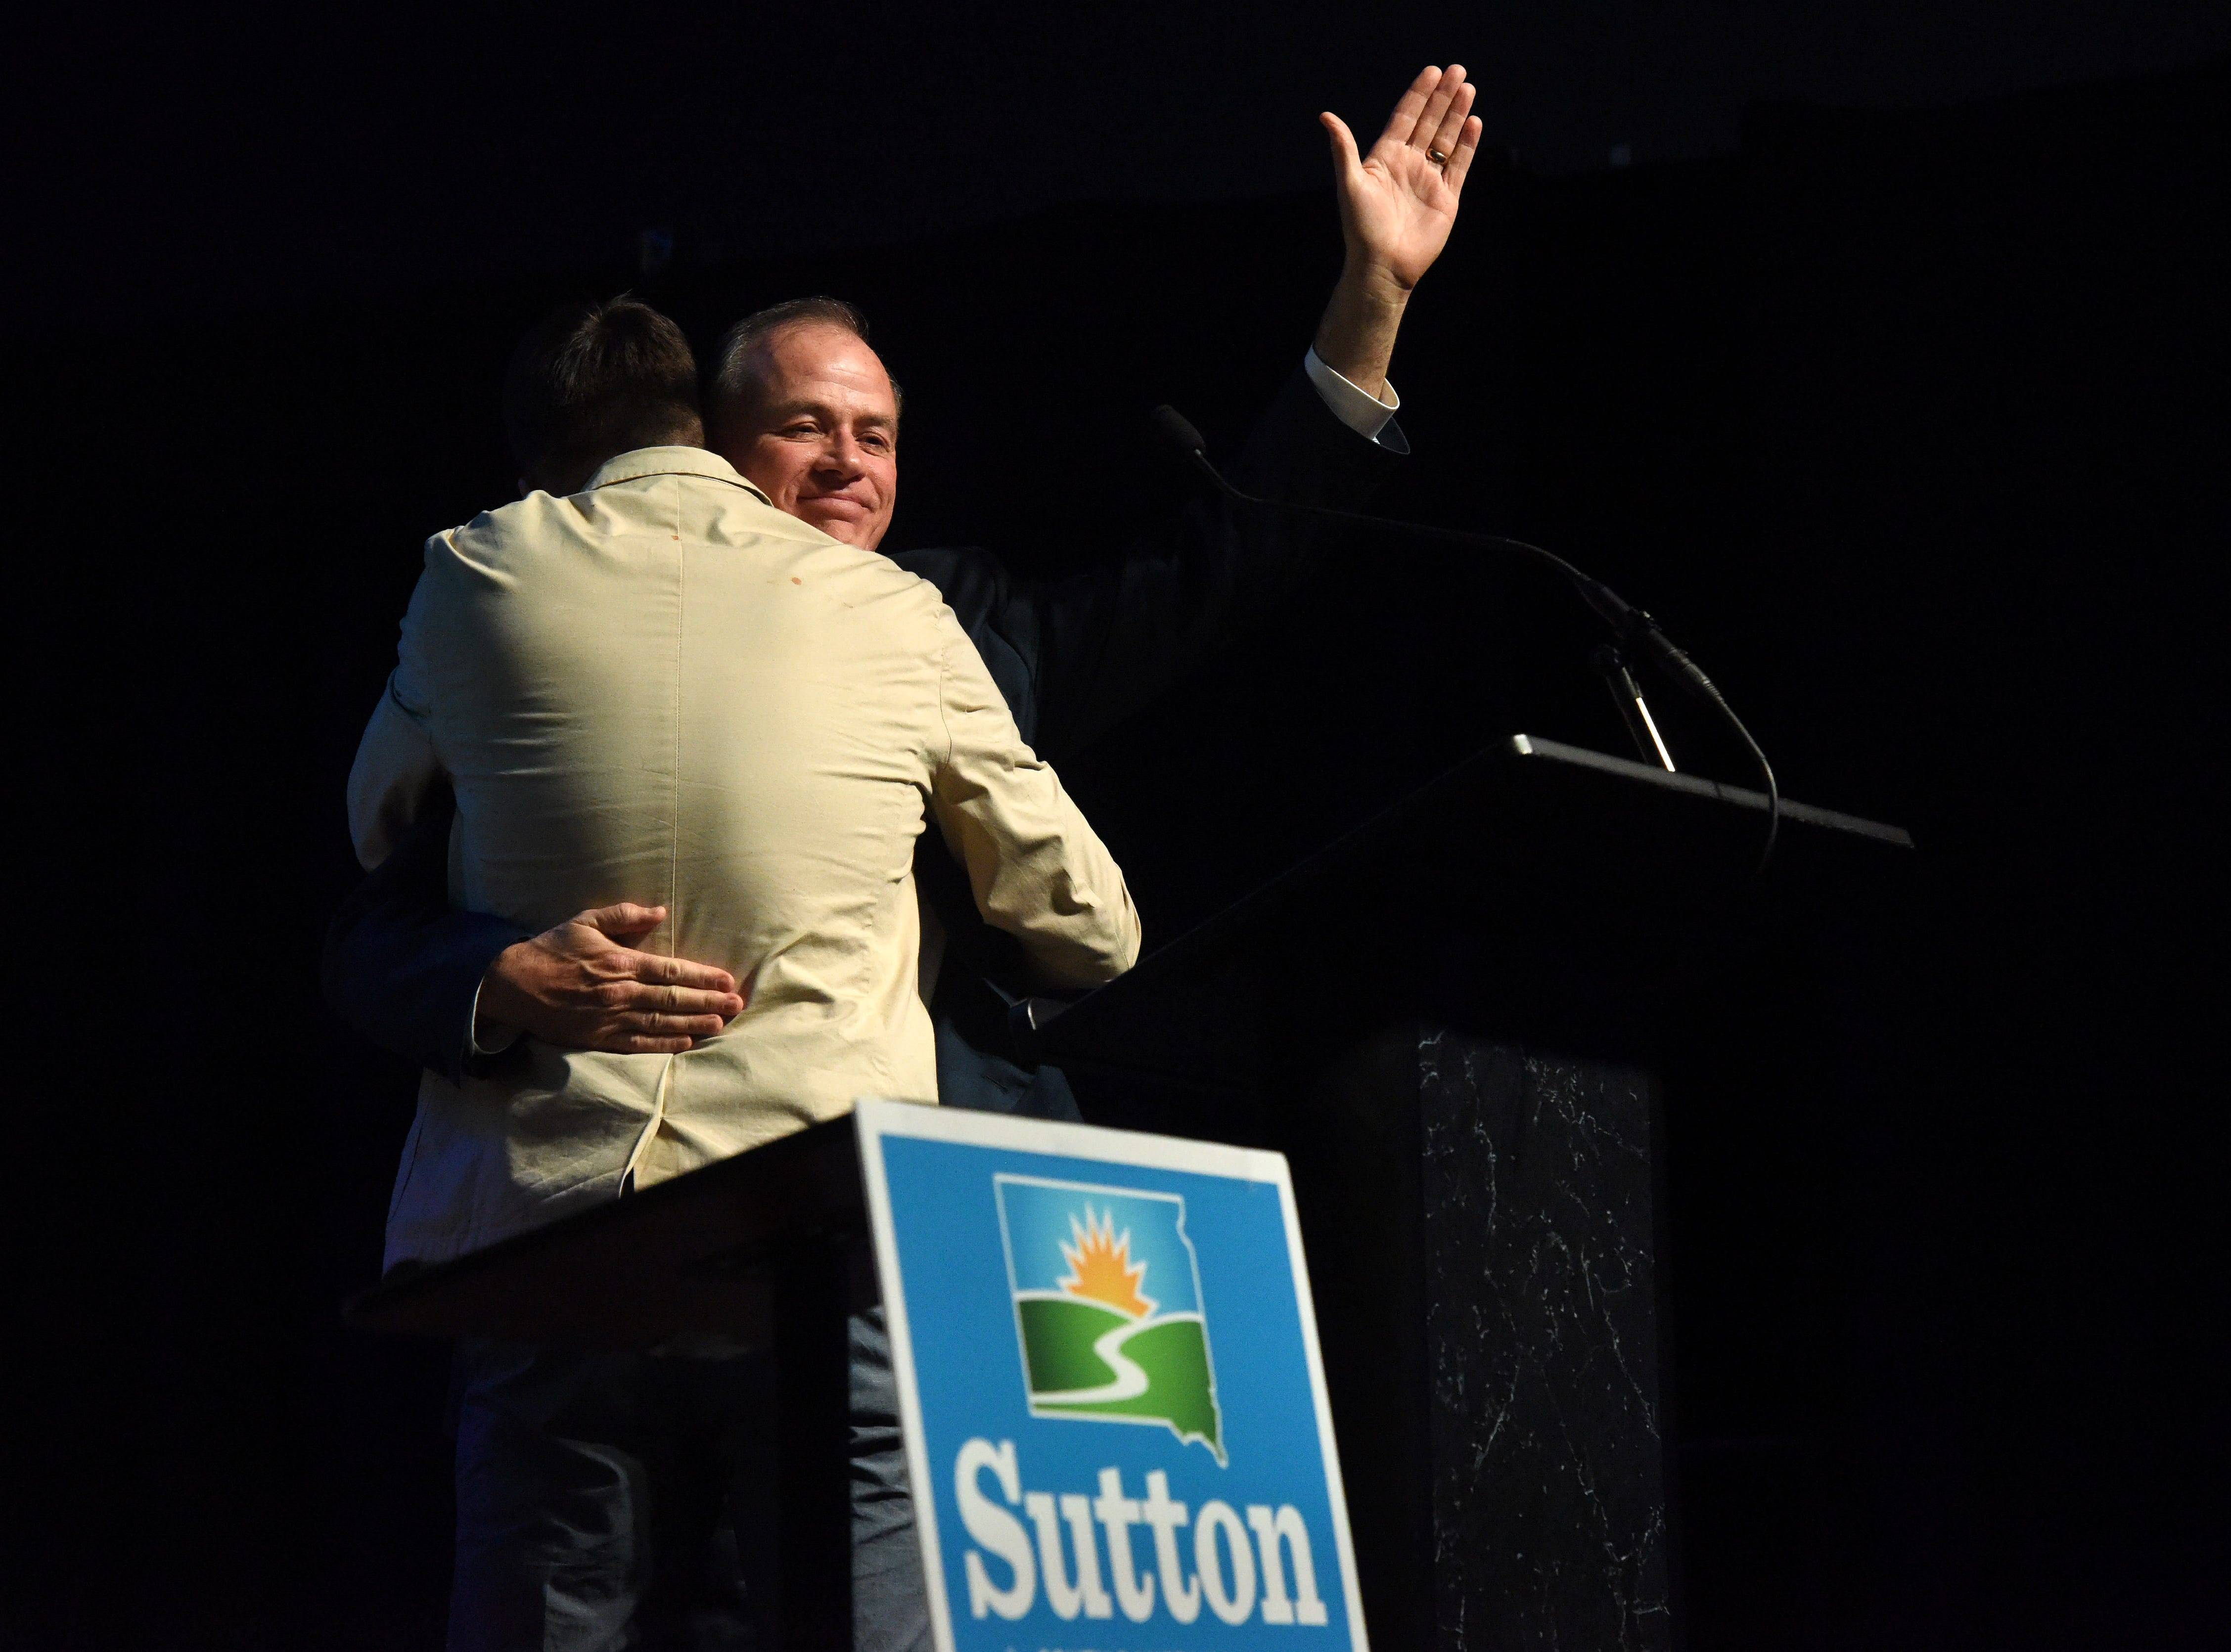 Tim Bjorkman hugs his son before giving his concession speech after losing the race to Dusty Johnson, Tuesday, Nov. 6, 2018 at The District in Sioux Falls, S.D.